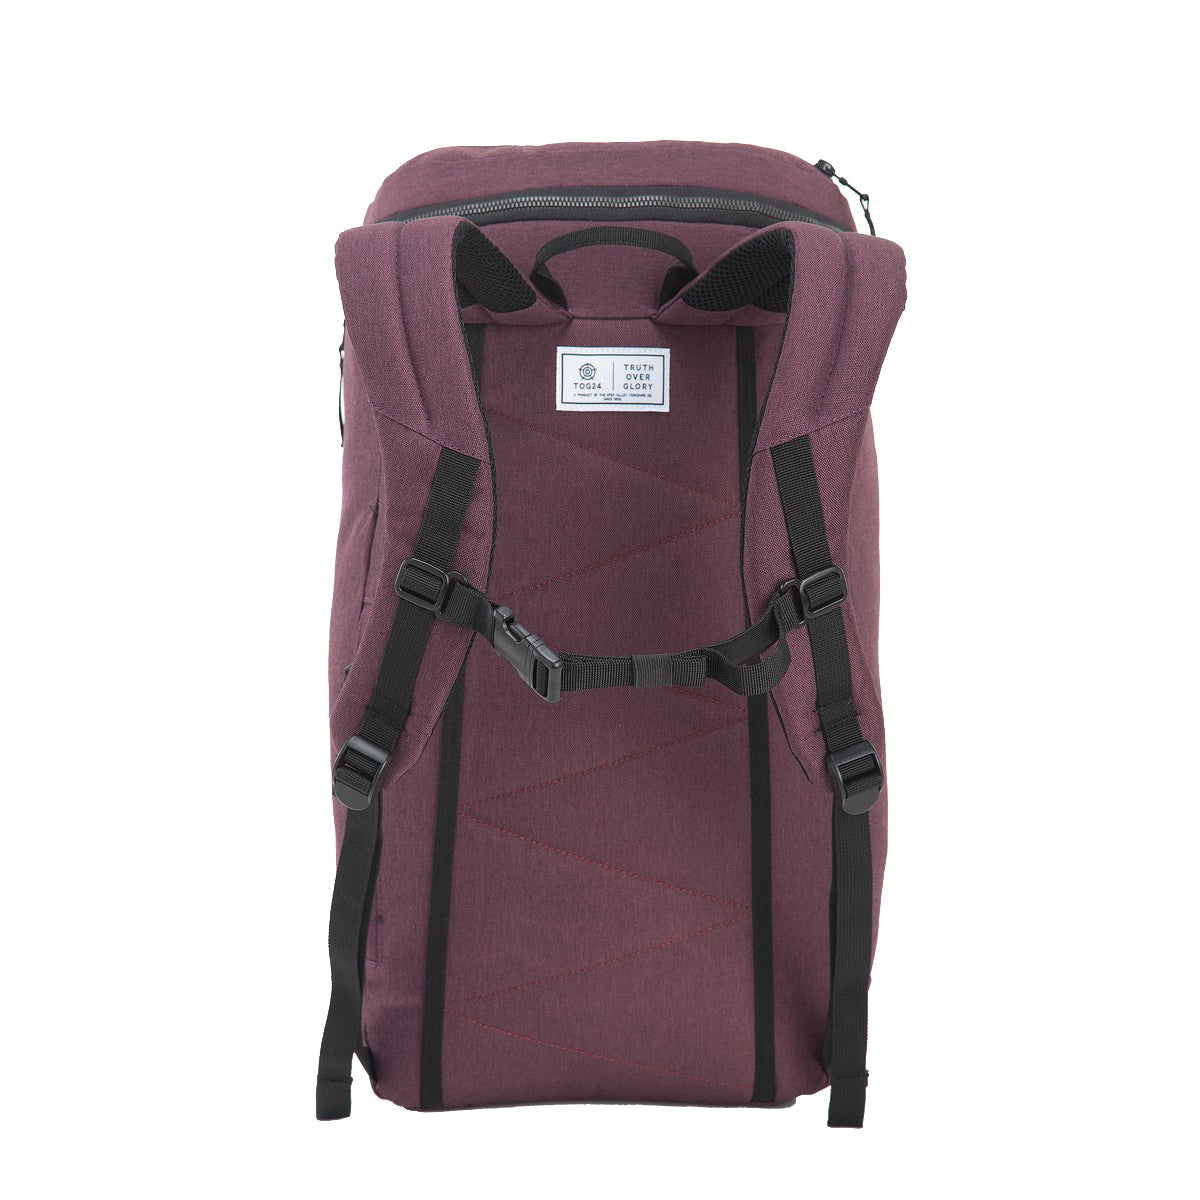 Fatham 30L Backpack - Deep Port Marl image 4